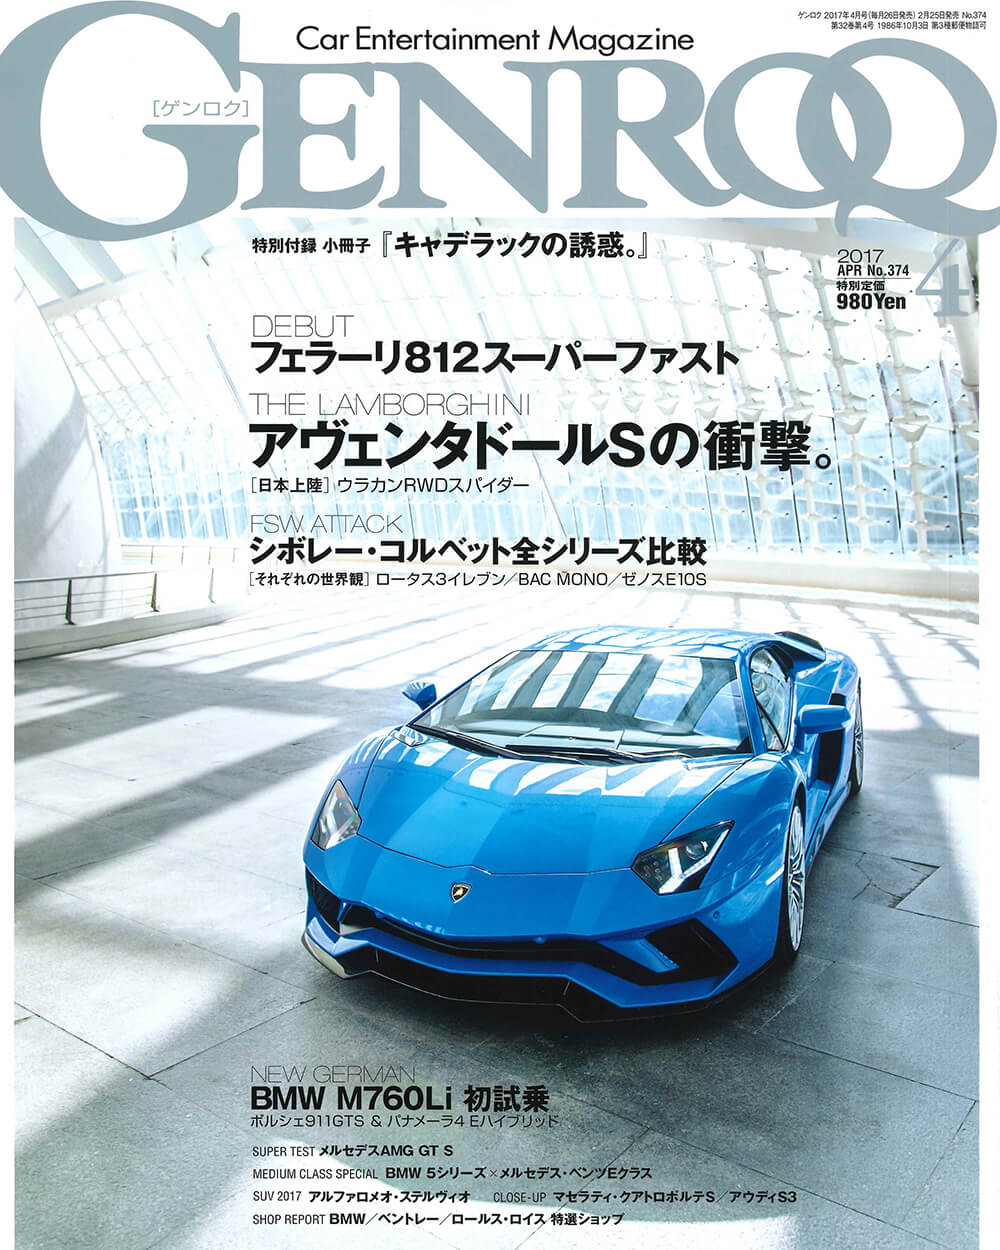 GENROQ Apr. issue